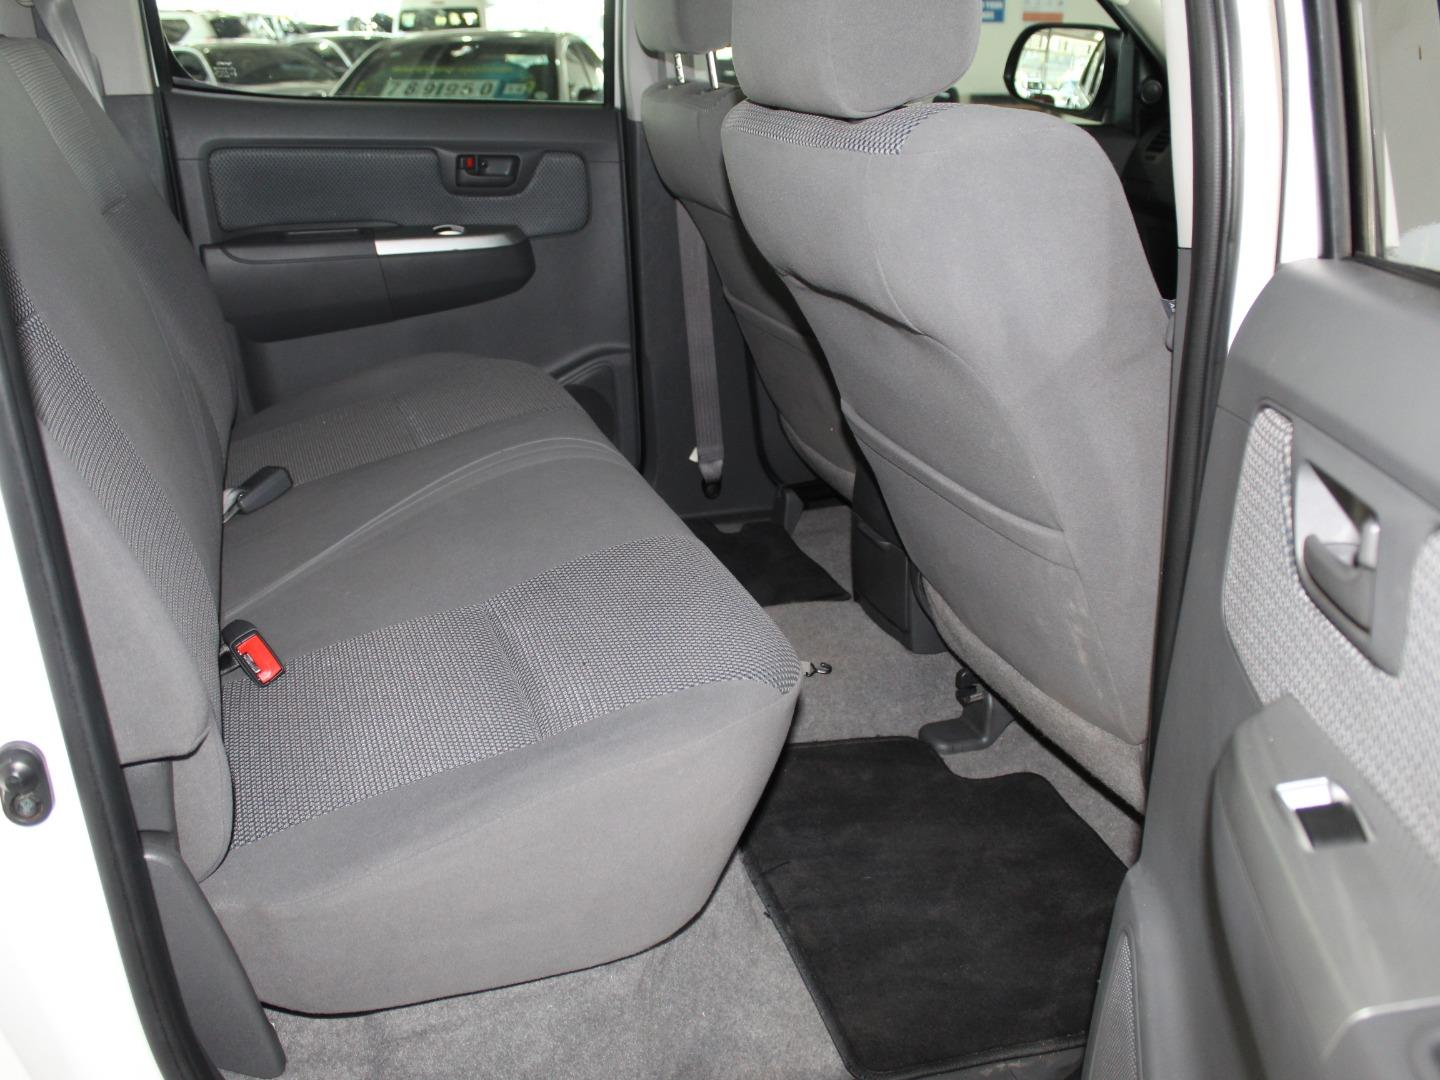 2014 Toyota Hilux 4.0 V6 Double Cab Raider- Picture 4